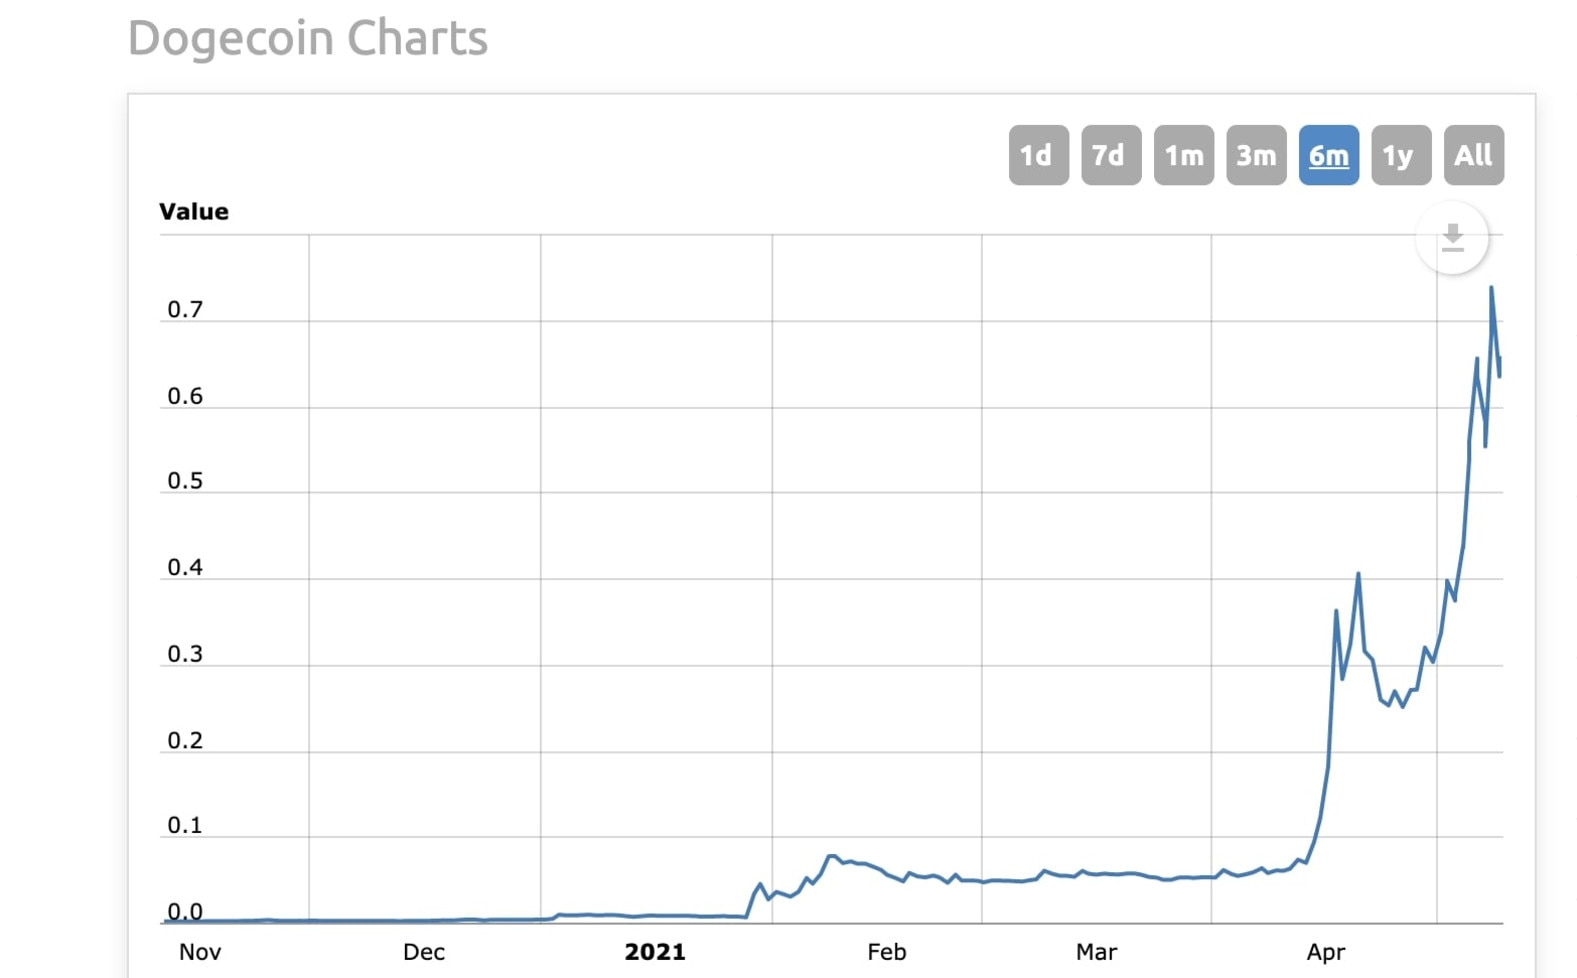 Meme currency Dogecoin has surged to incredible heights.